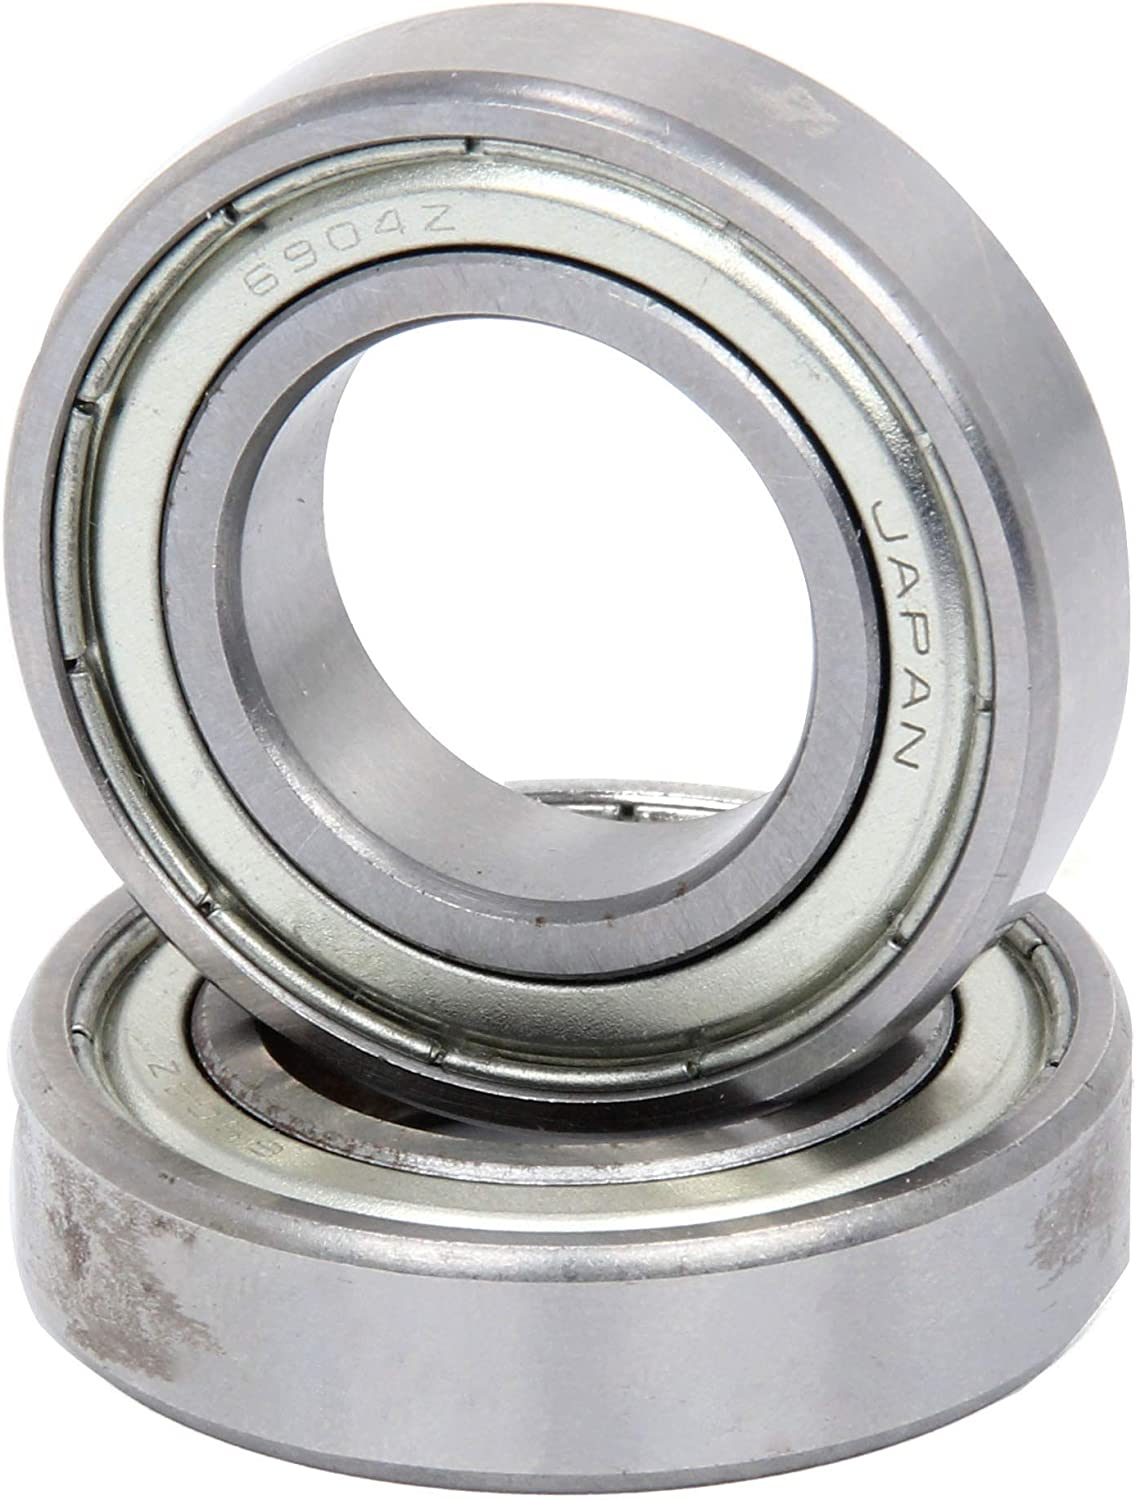 YZ125 Front Wheel Bearings and Seals Kit 98 99 00 01 02 03 04 05 06 07 08